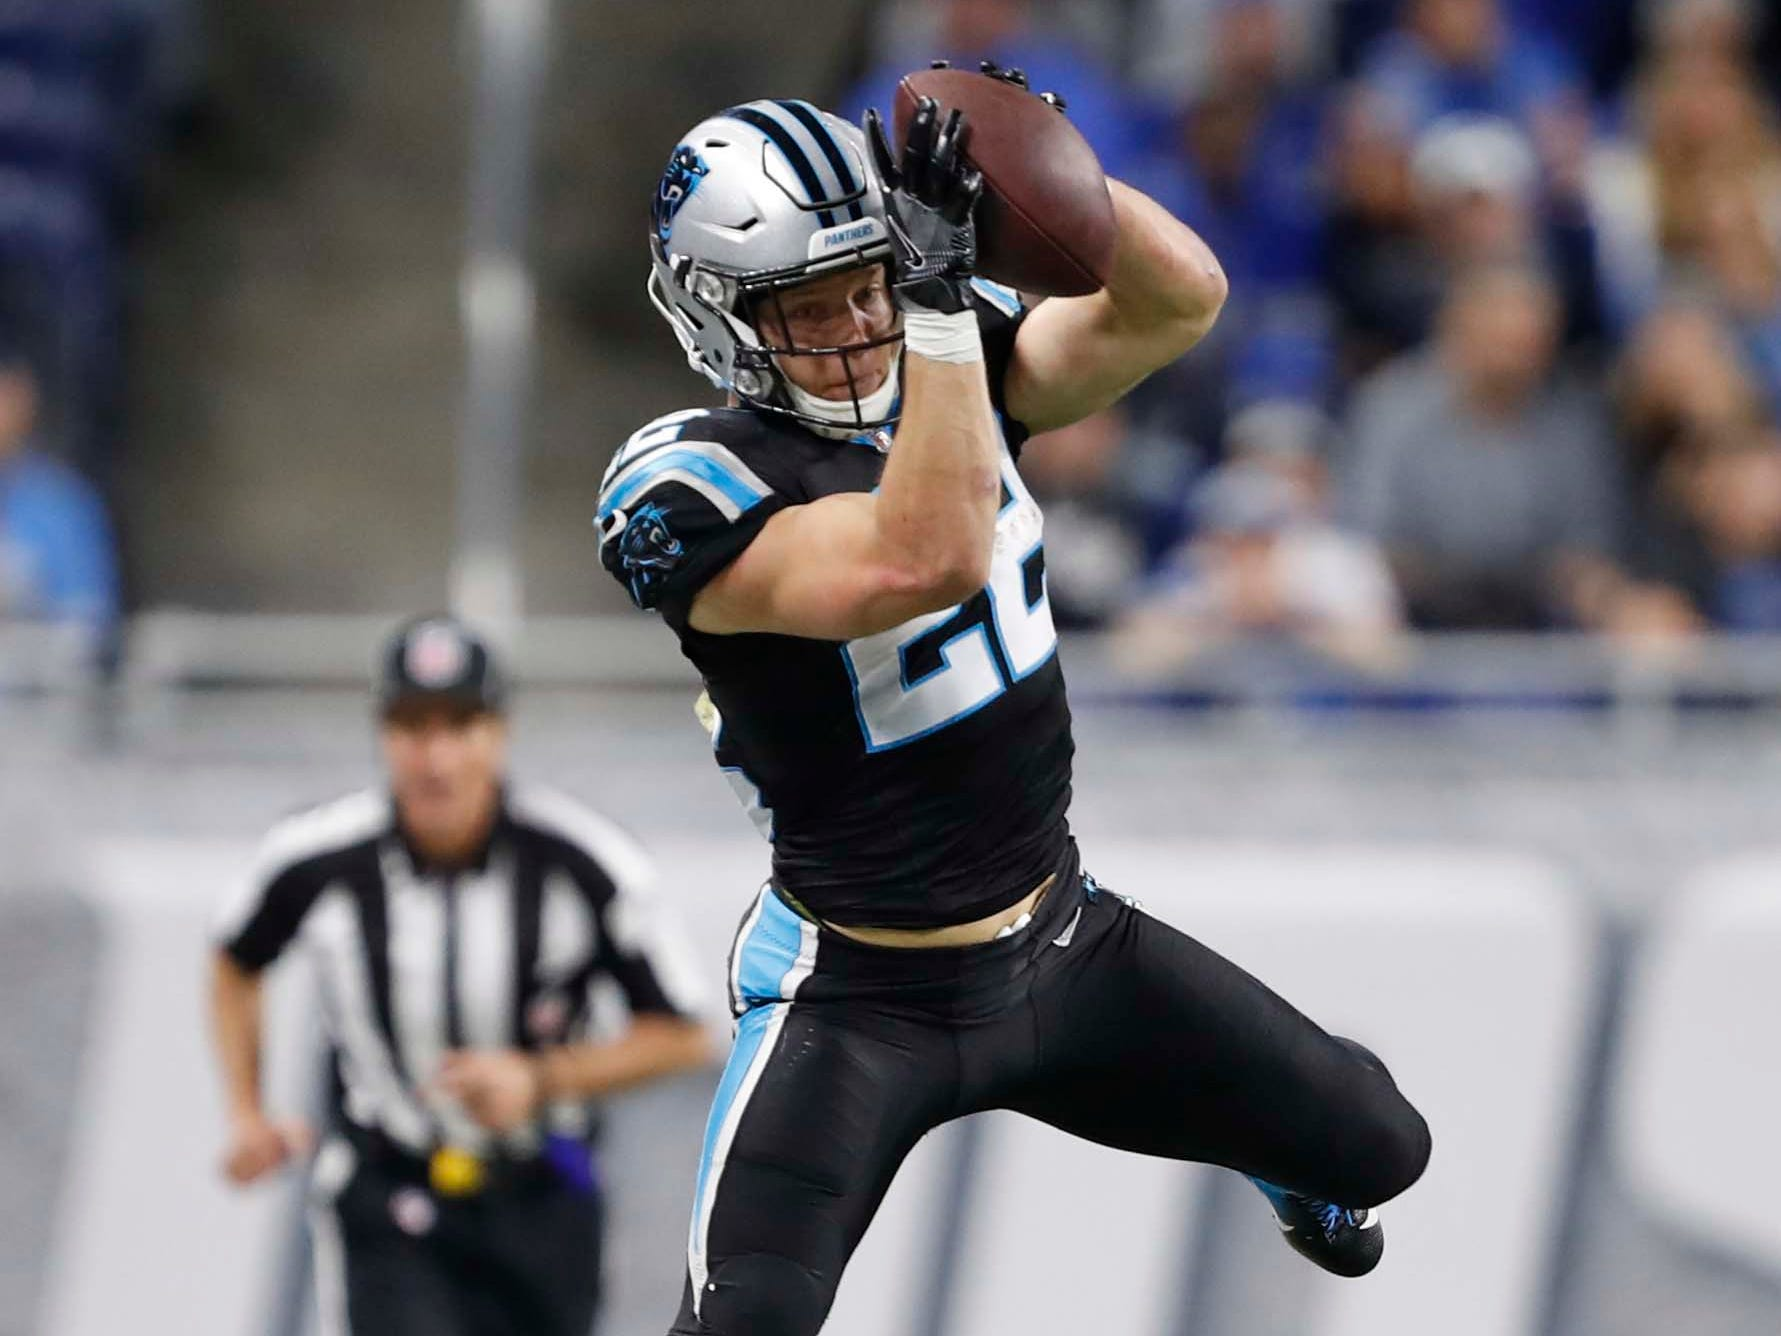 10. Panthers (10): Christian McCaffrey playing insane 97 percent of offense's snaps. By comparison, Todd Gurley has never exceeded 85 percent in a season.